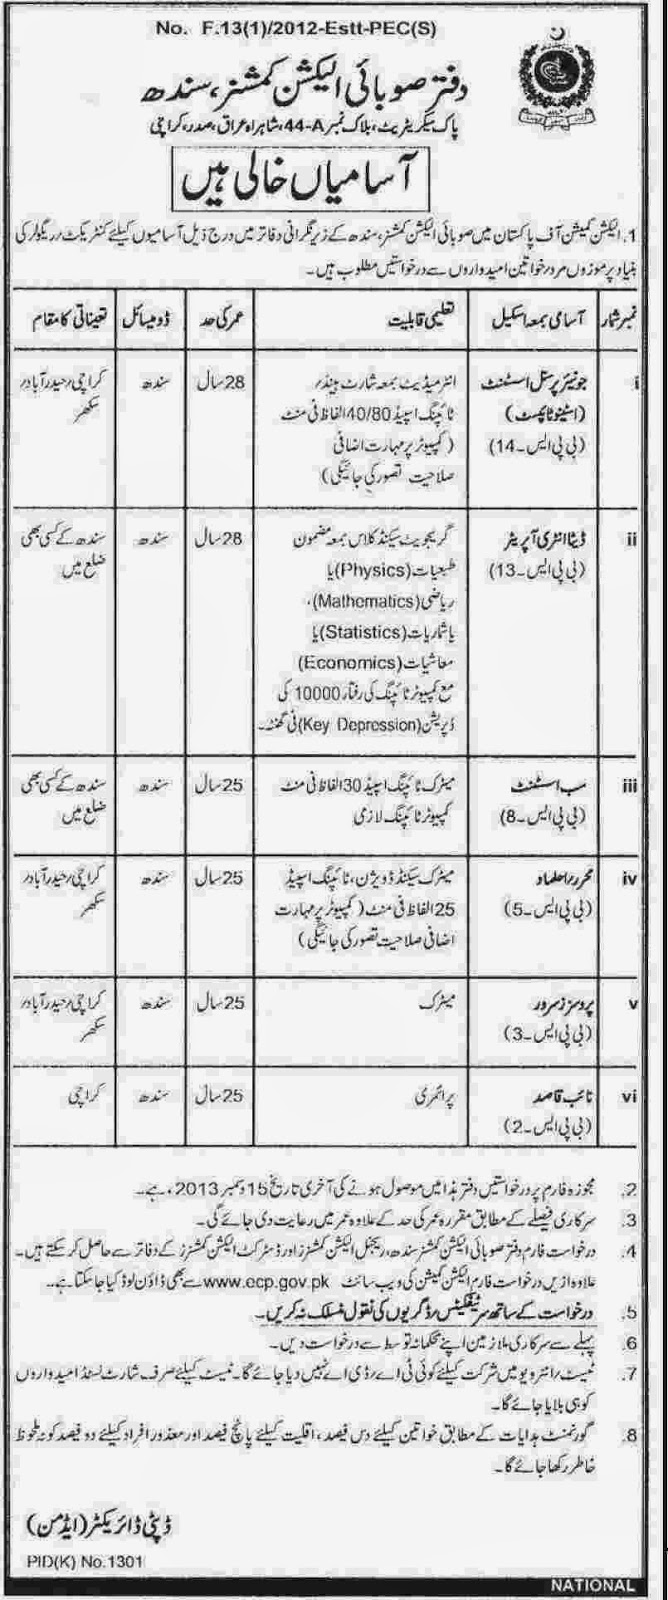 Election Commission Of Pakistan Jobs, Sindh